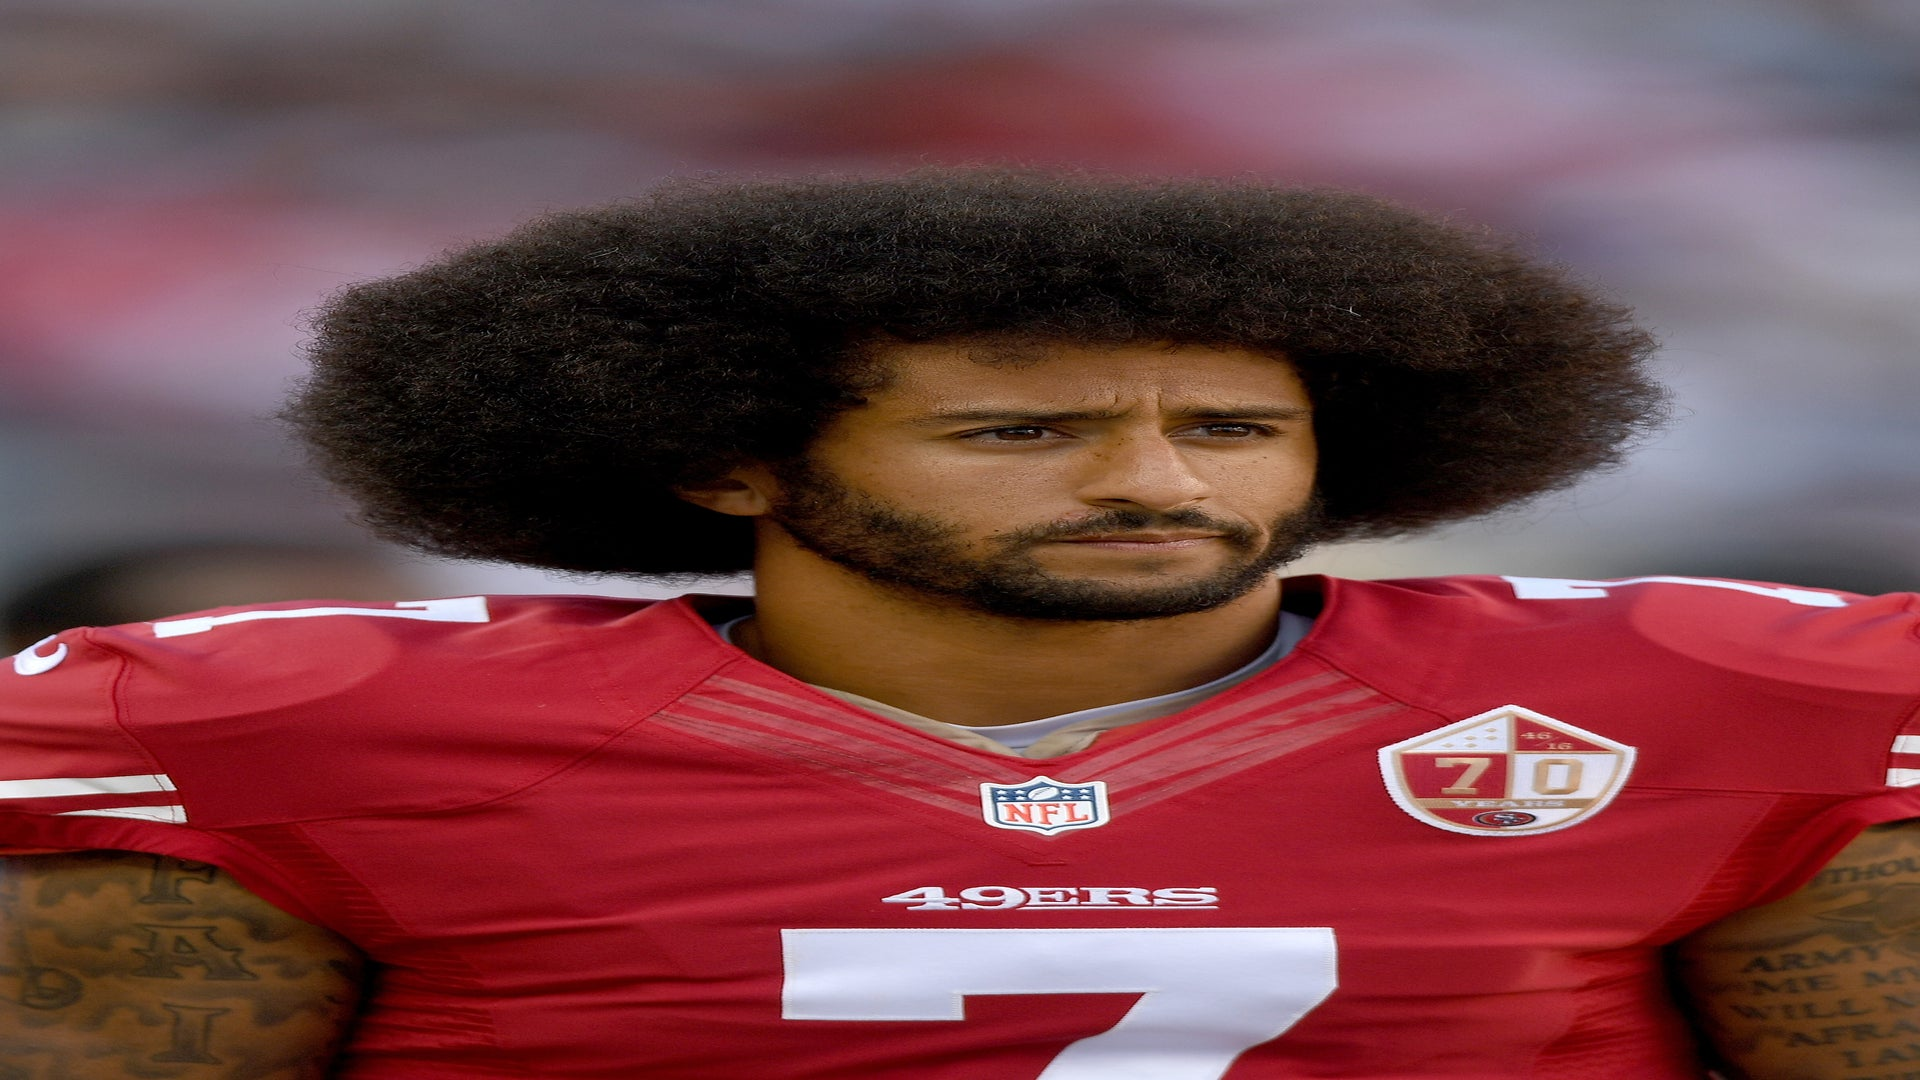 Colin Kaepernick's Teammates Vote Him 'Most Courageous'